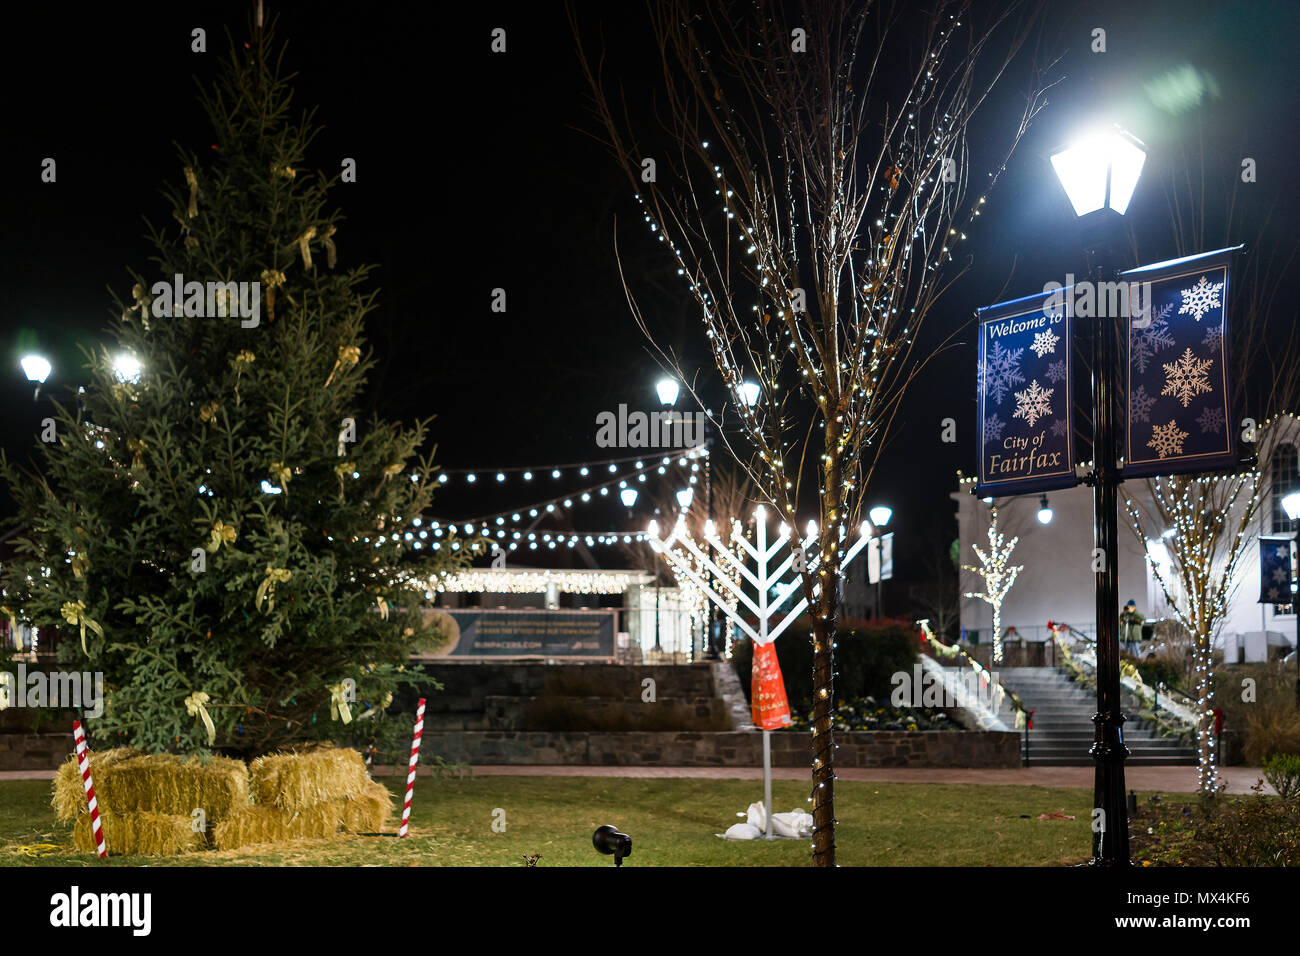 Fairfax, USA - December 24, 2017: Christmas Eve decorations in ...